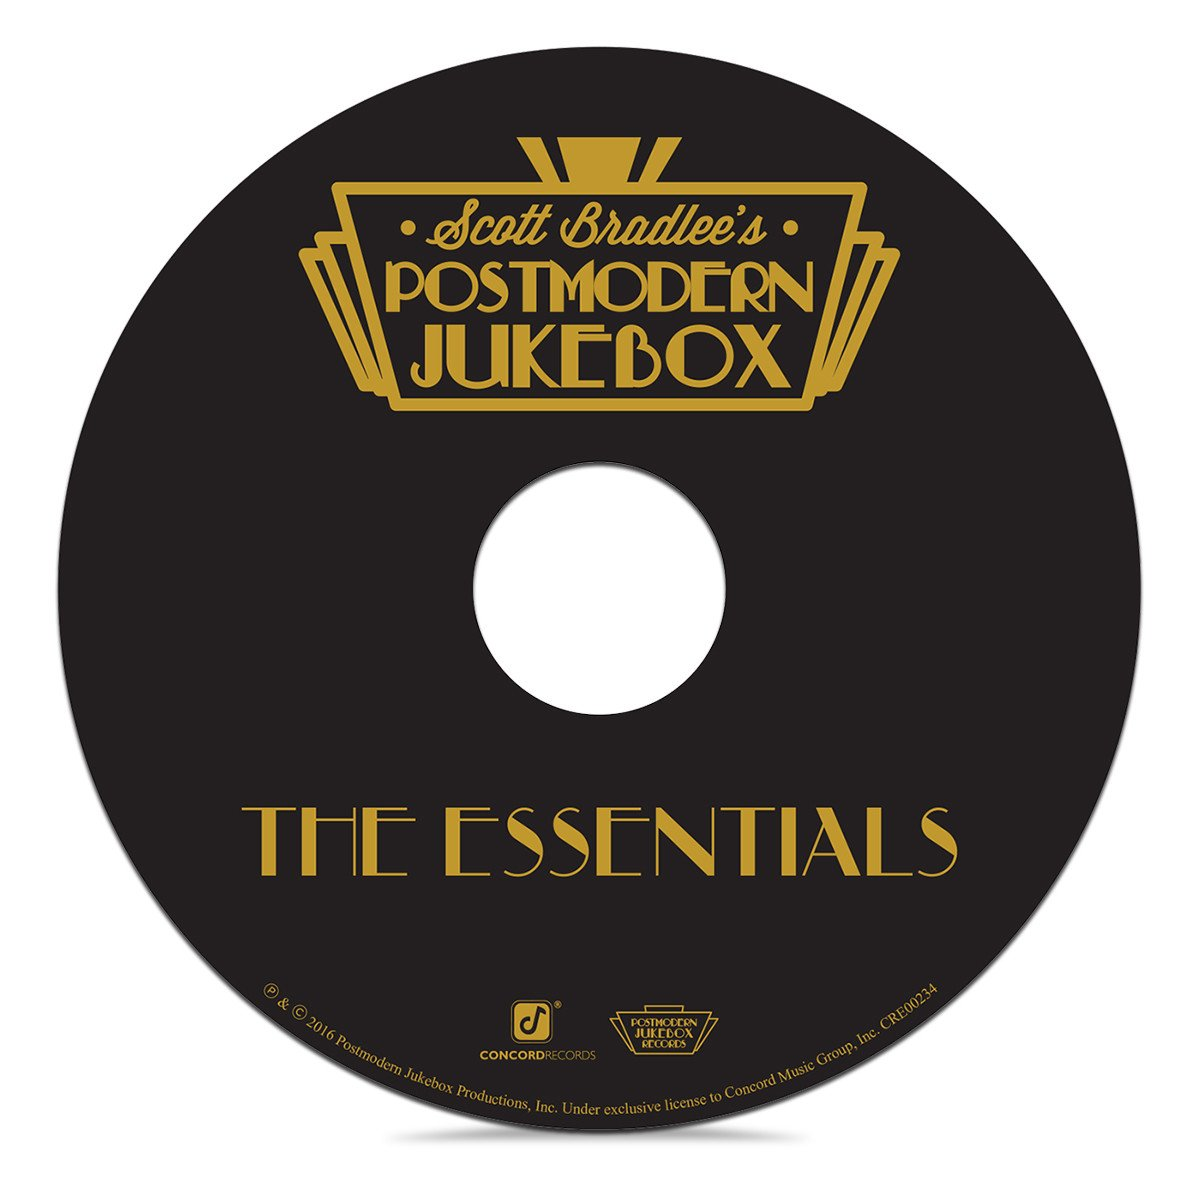 The Essentials Album [CD]